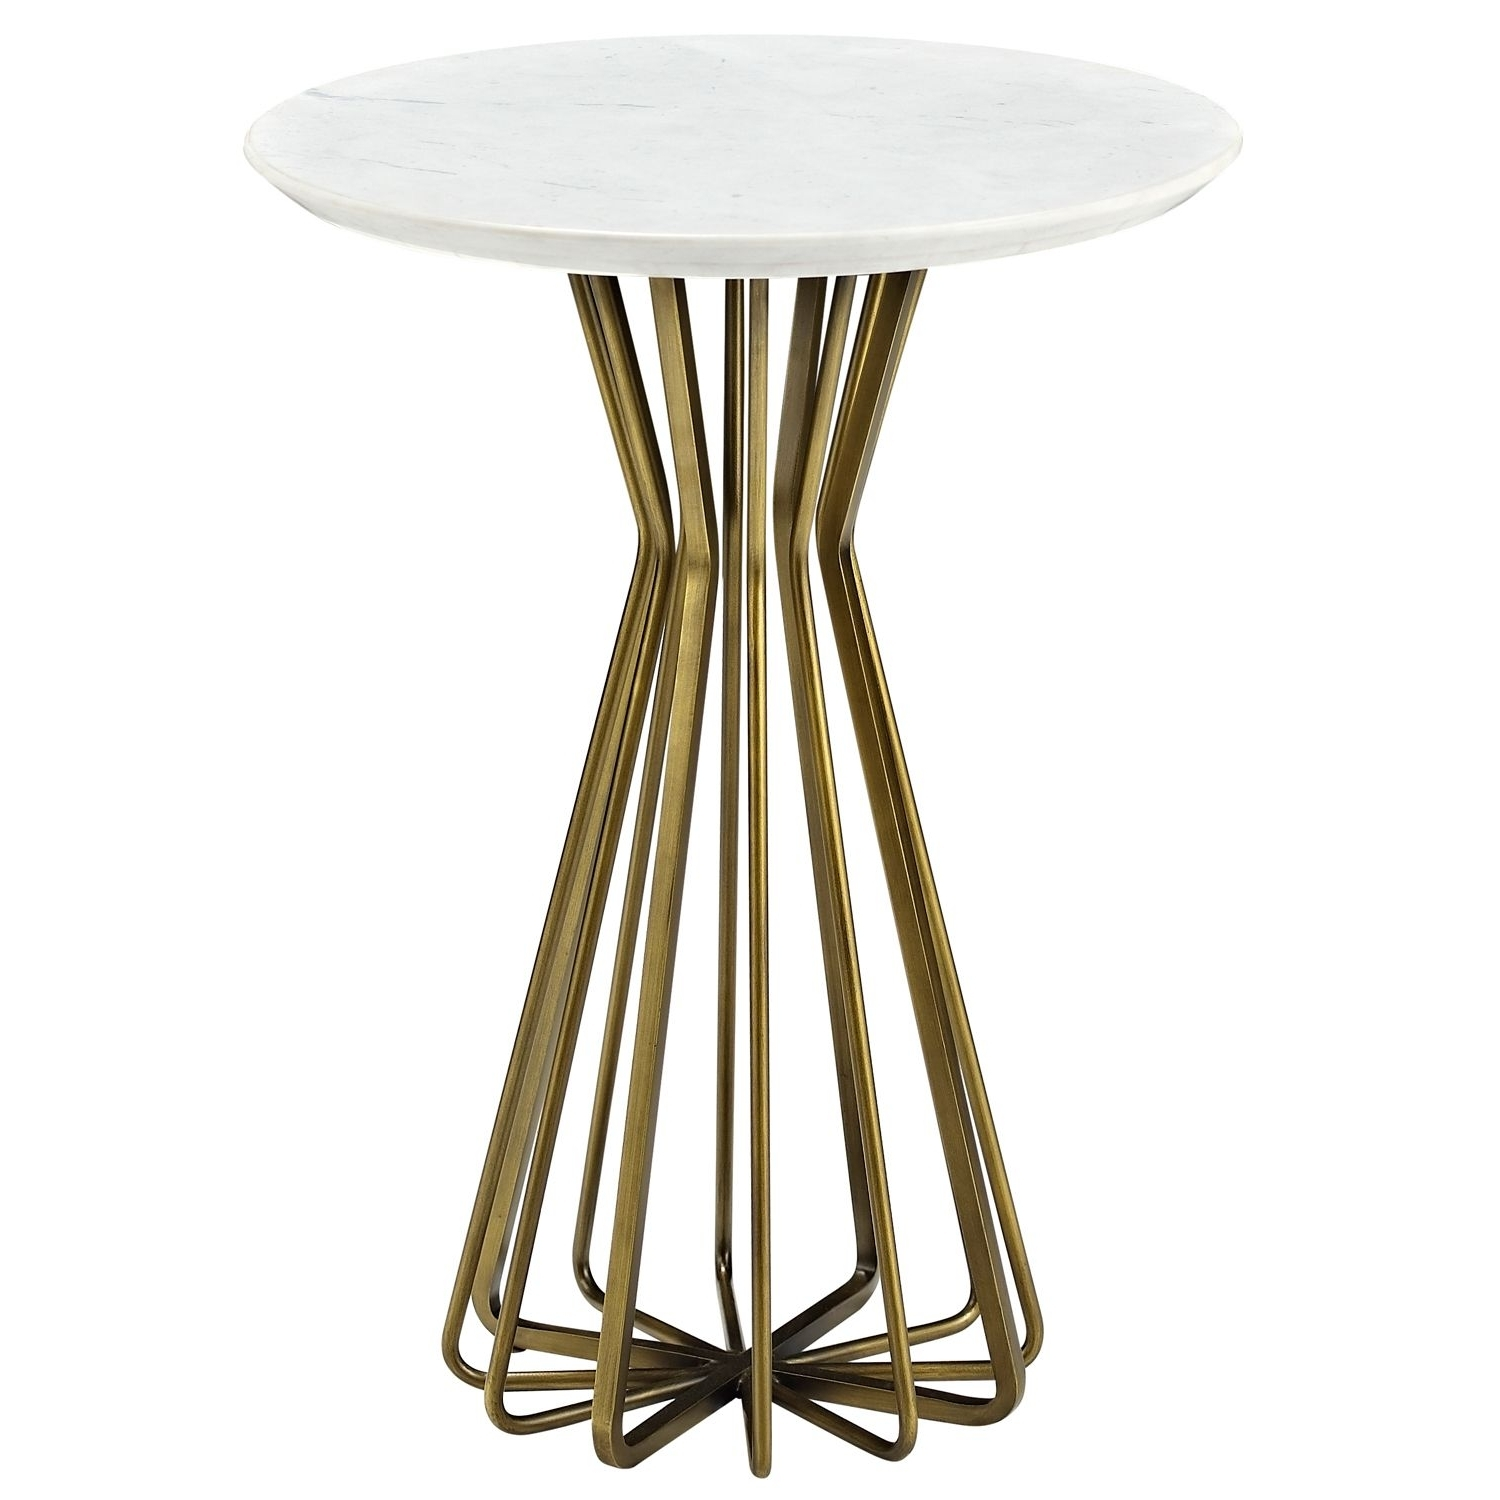 A Compelling Openwork Design Provides The Contemporary Style Of The With Latest Exton Cocktail Tables (View 1 of 20)